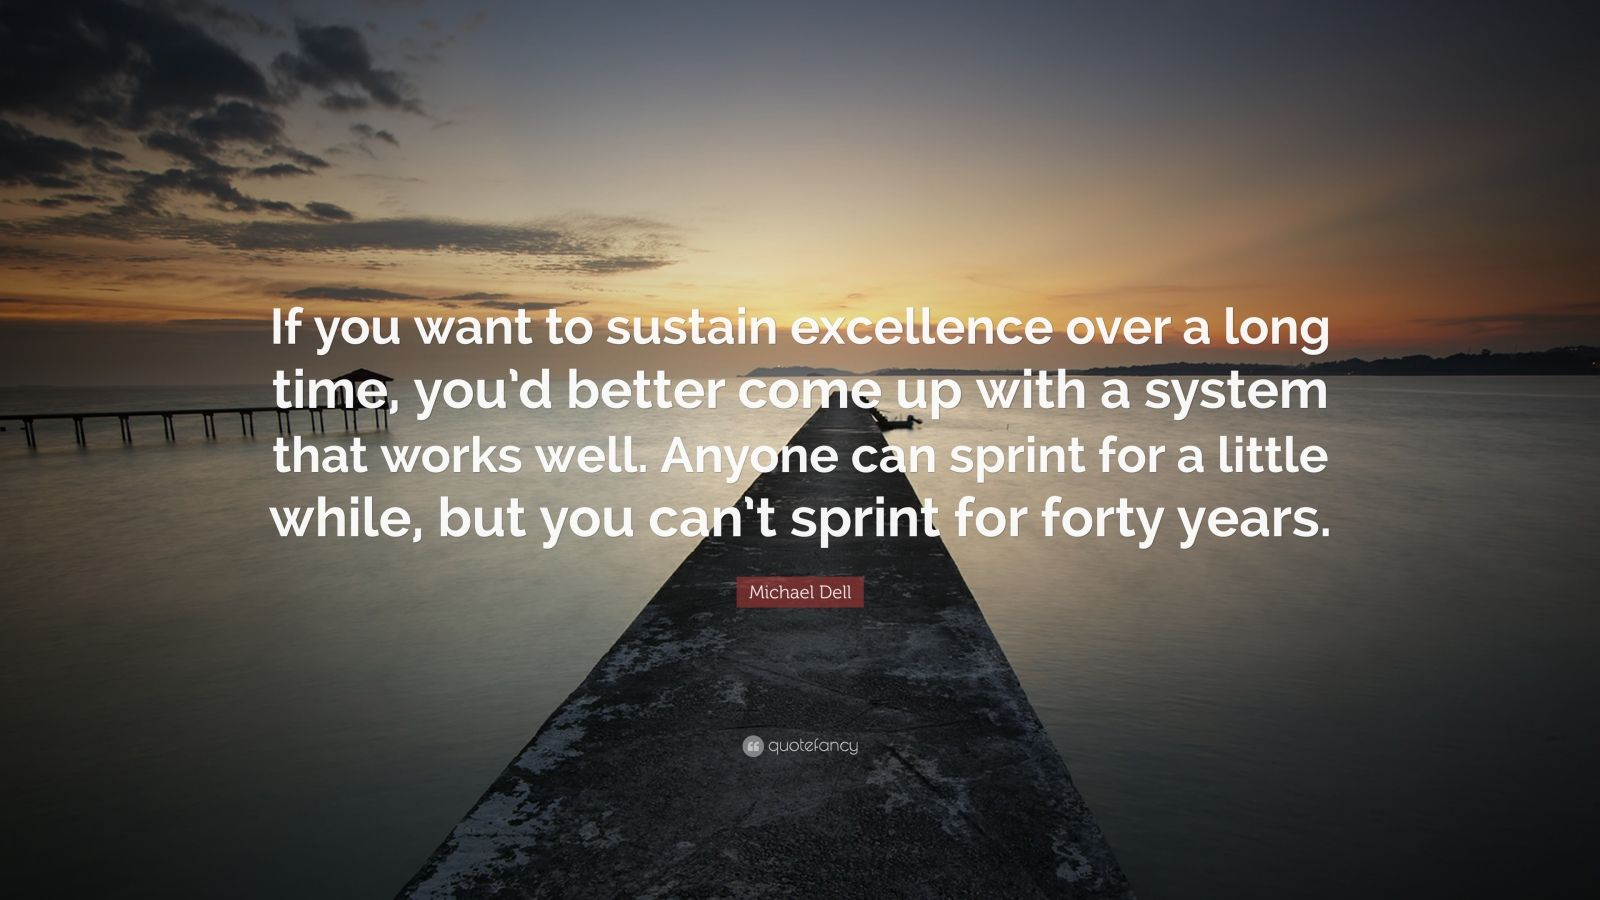 "Michael Dell Quote: ""If you want to sustain excellence over a long time, you'd better come up with a system that works well. Anyone can sprint for a little while, but you can't sprint for forty years."""